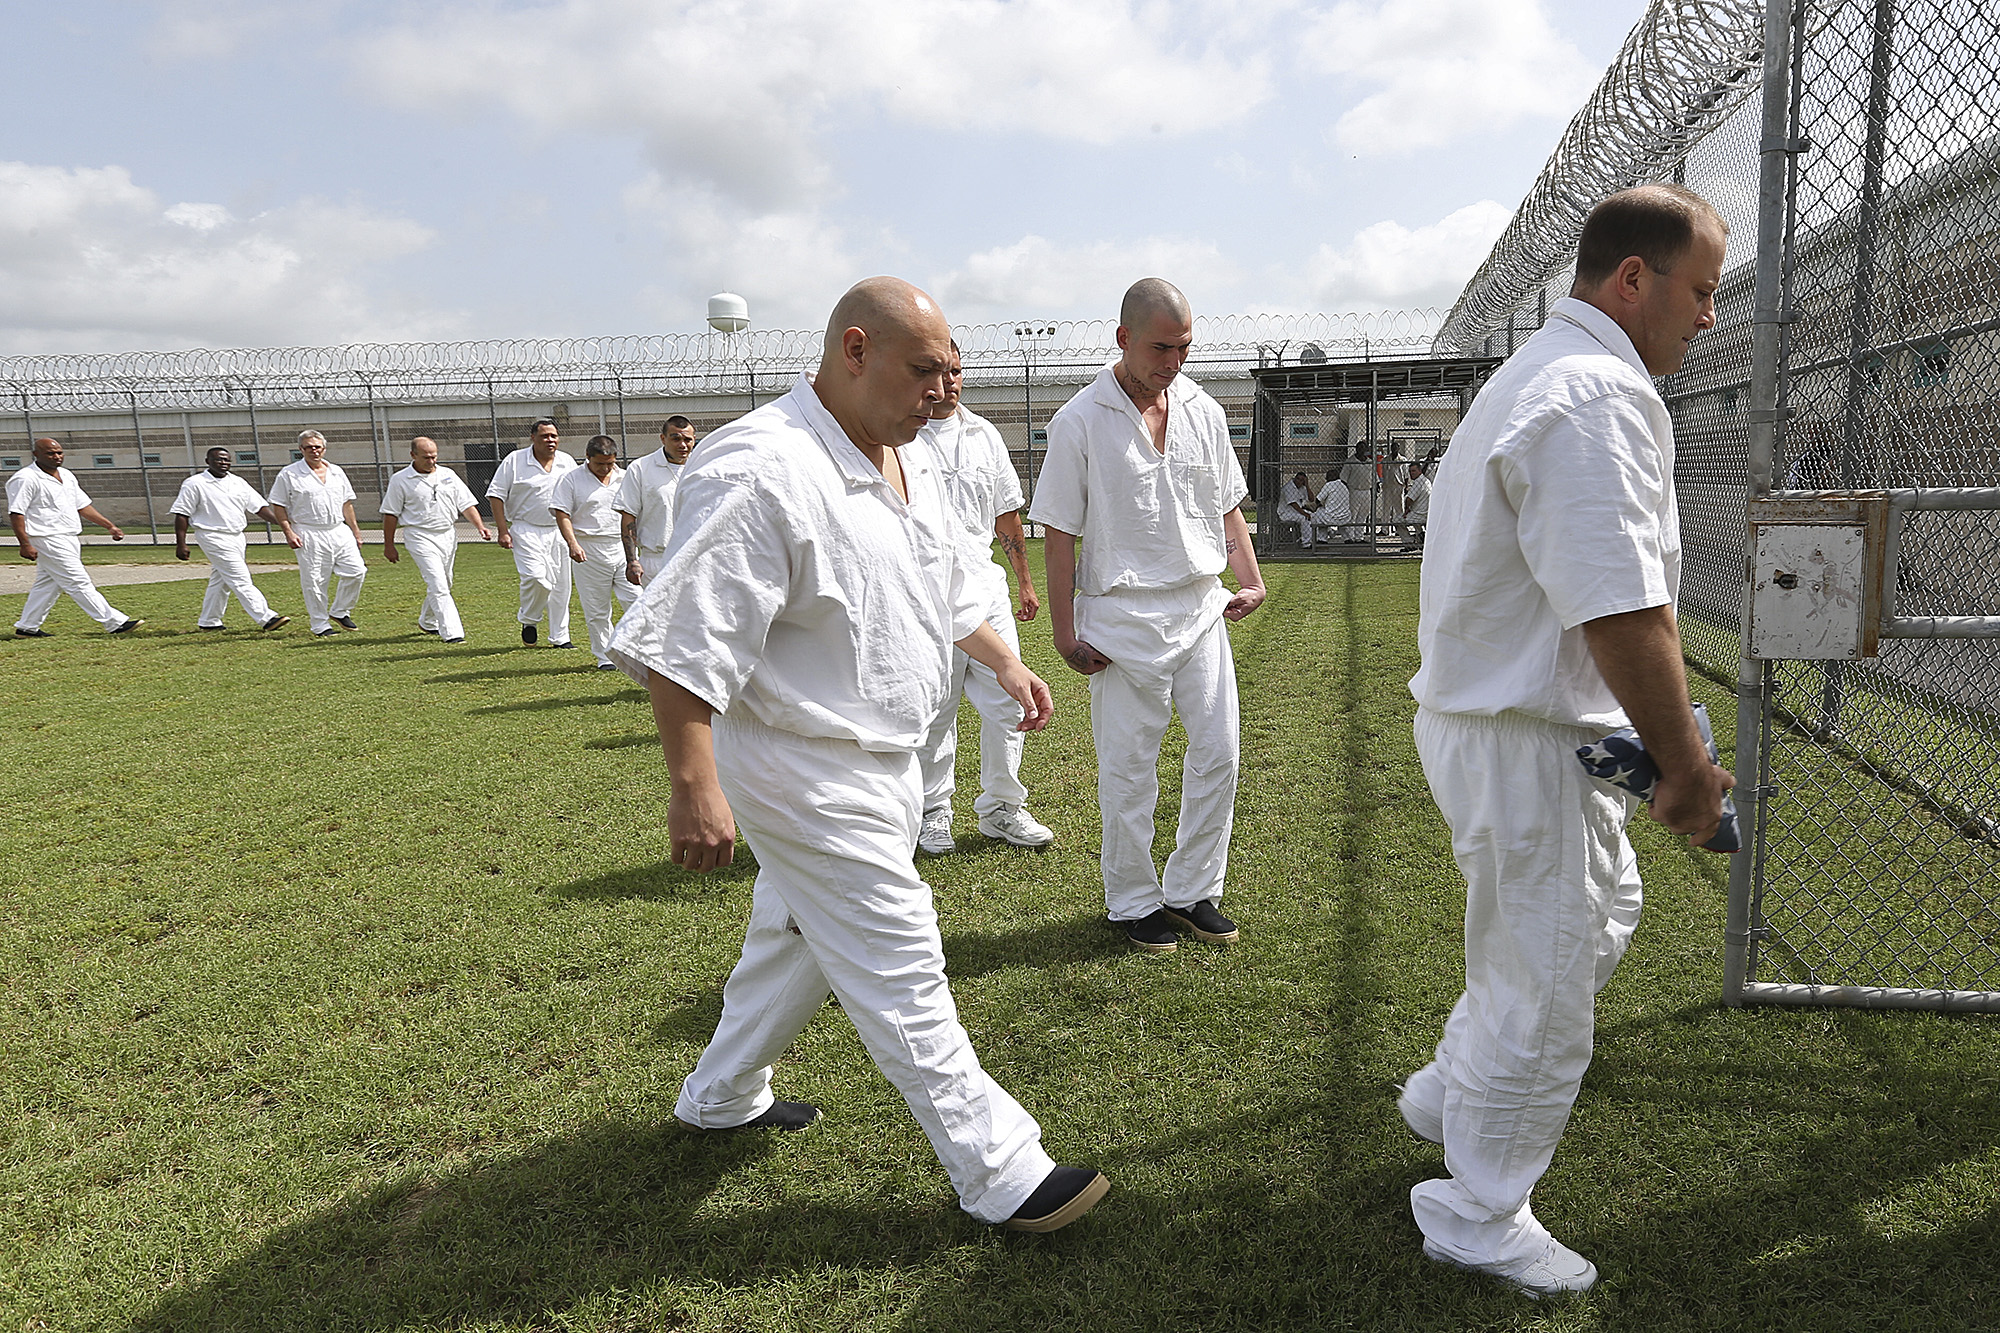 Return to military routine helps reform jailed veterans